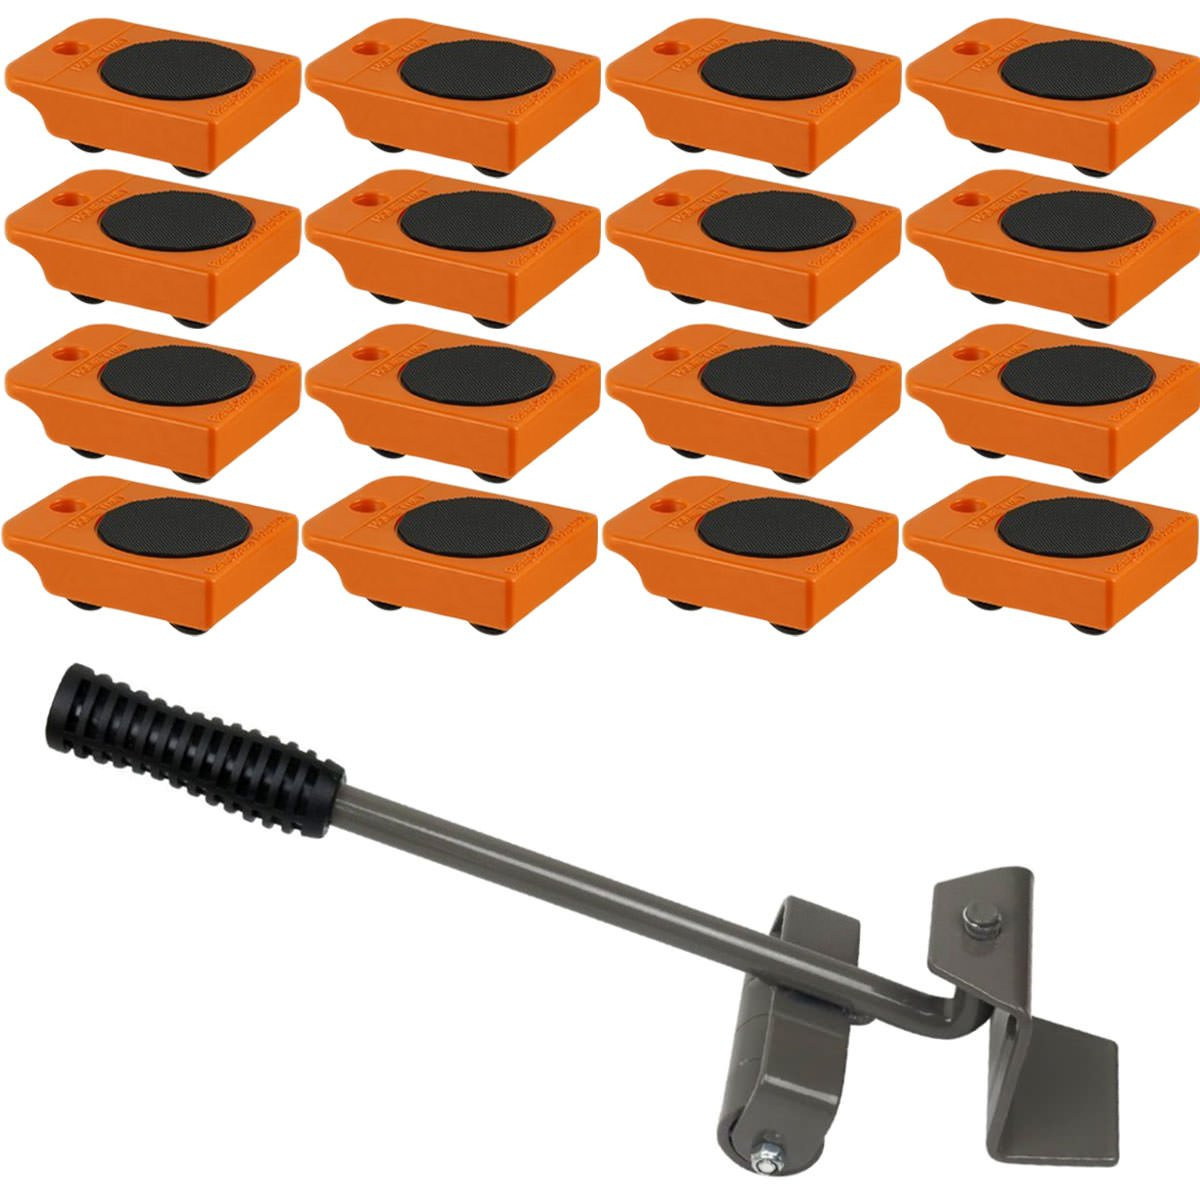 Furniture Lifter with 16pc Mover Rollers, Move Heavy Furniture Easily  - Furniture & Appliances Roll with Ease 4'' x 3''